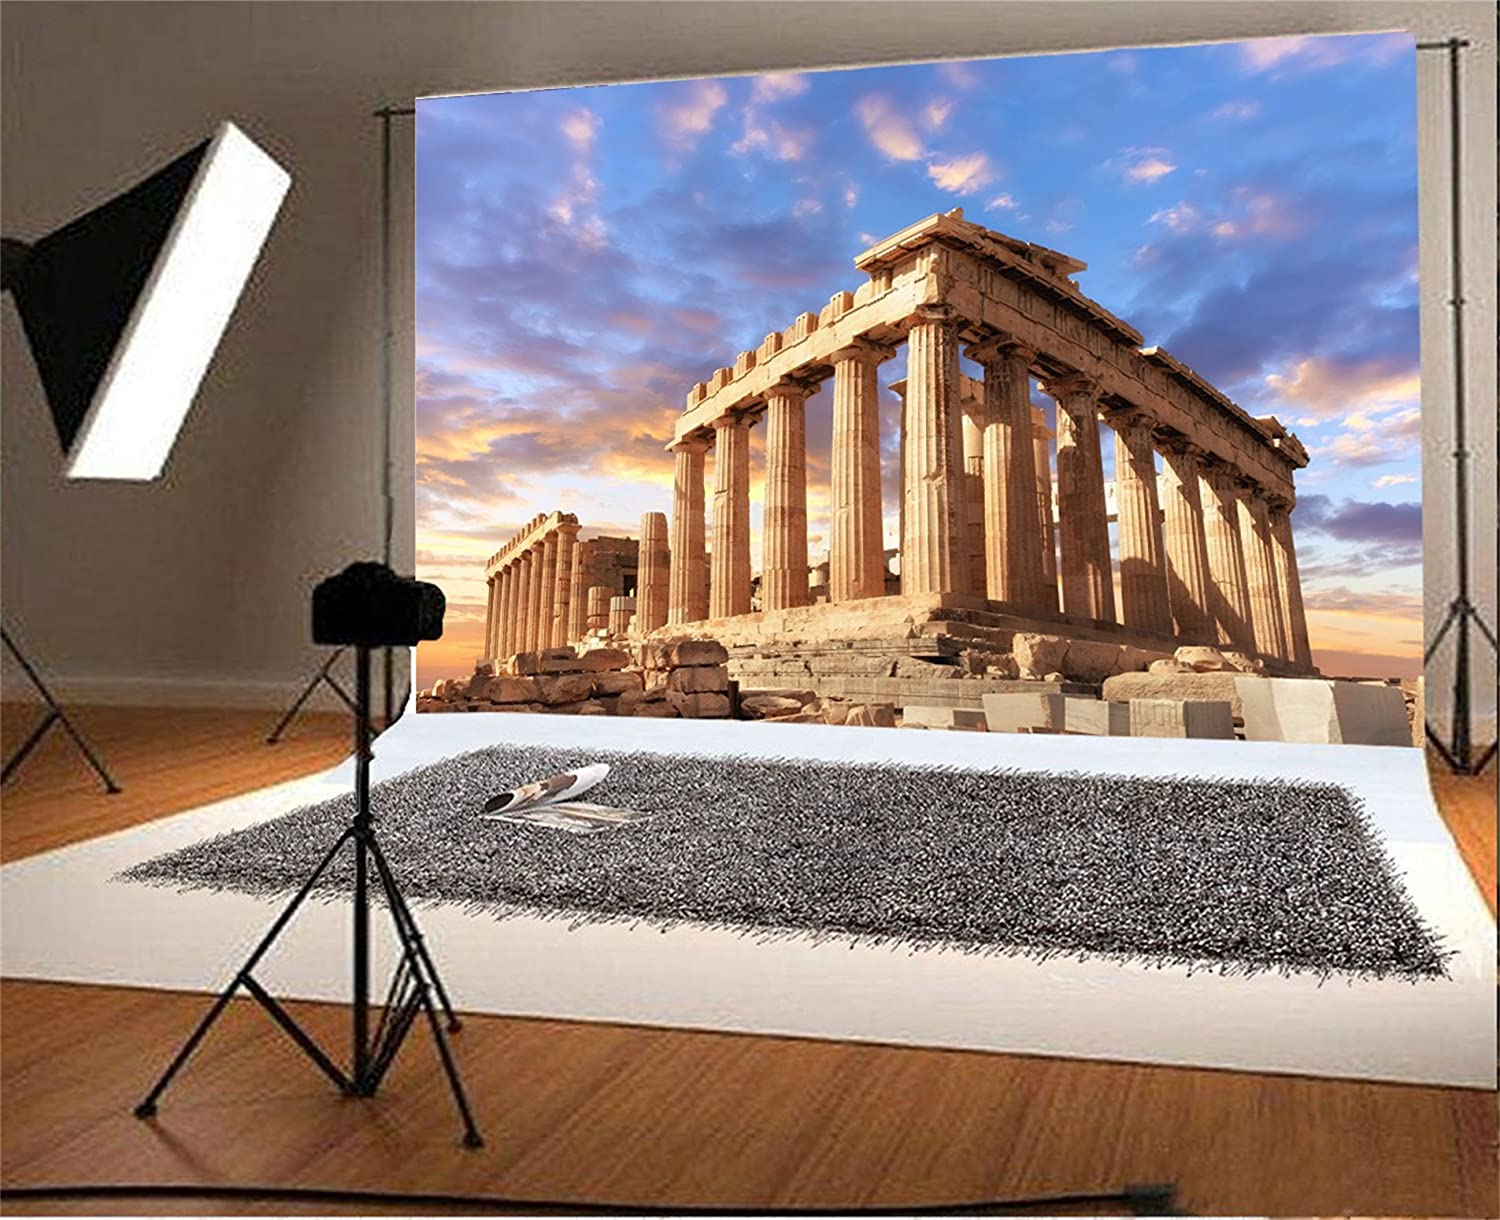 AOFOTO 15x8ft Greece Athens Acropolis Background for Photography Ancient Greek Architecture Pillar Stone Historical Parthenon Temple Backdrop Travel Holiday Photo Shoot Props Poster Banner Vinyl